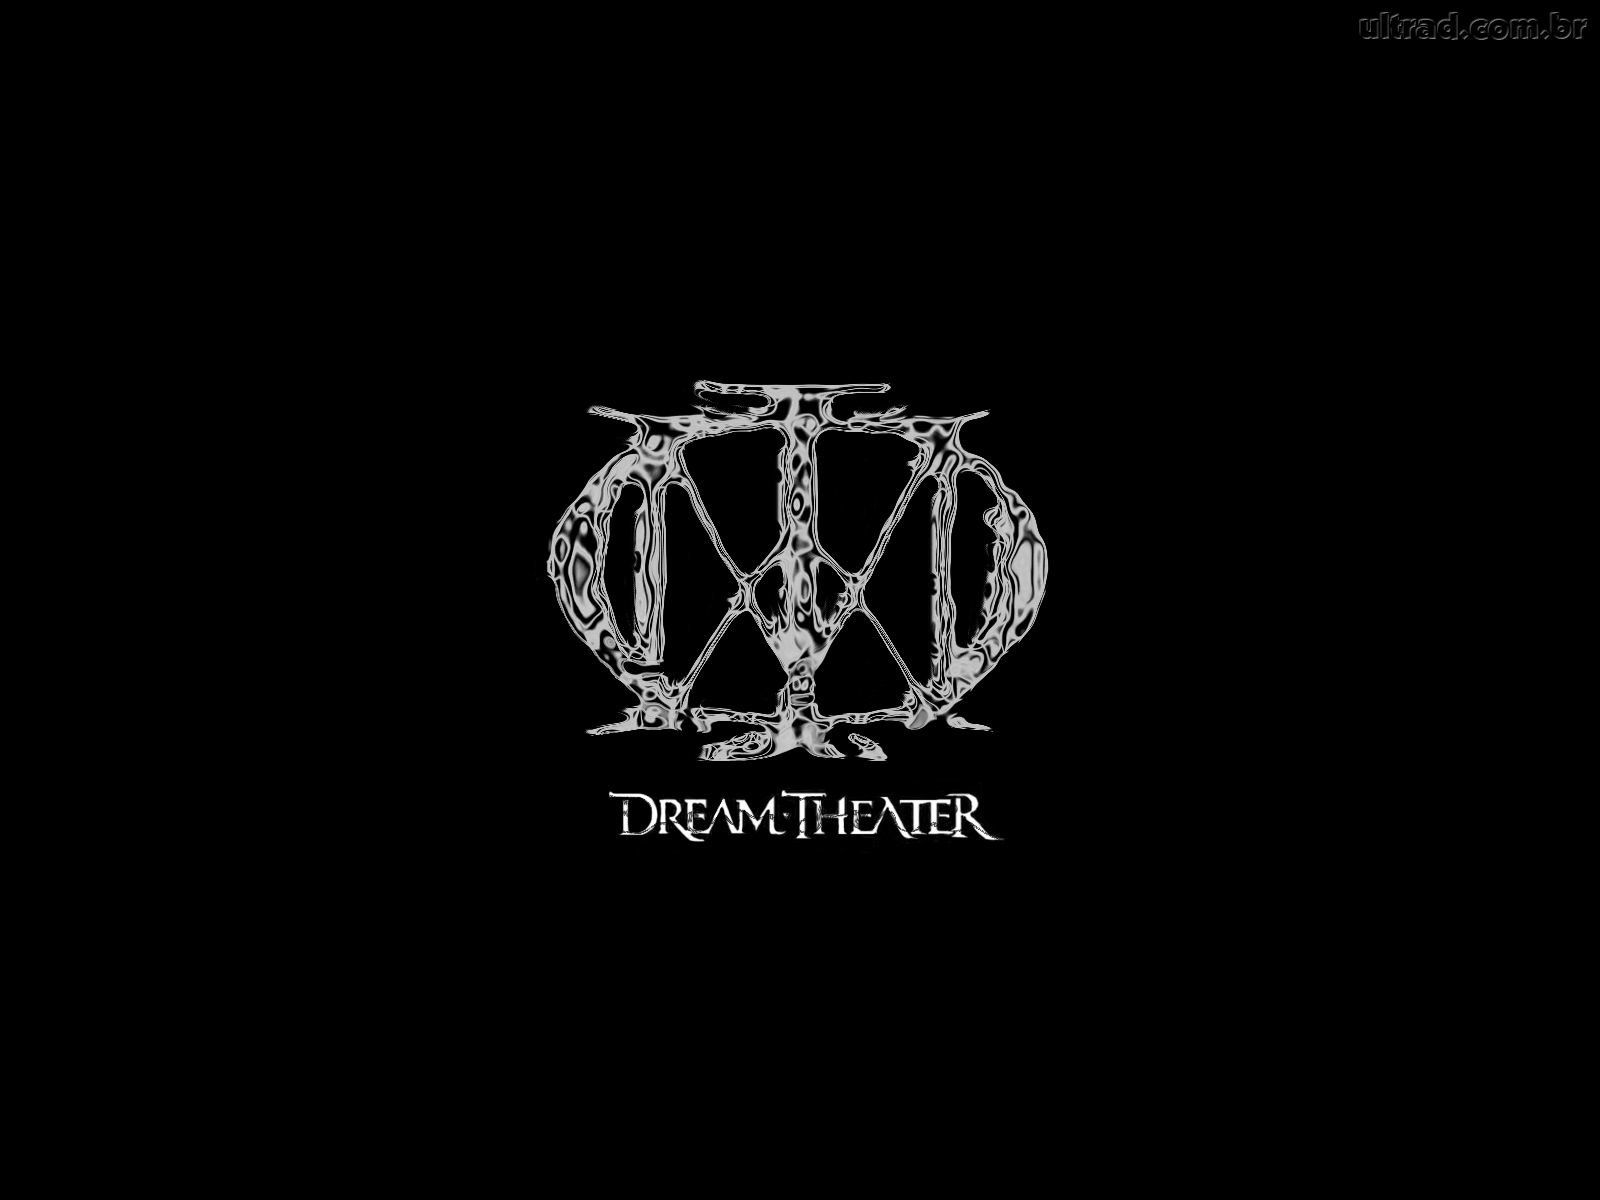 8 Dream Theater Hd Wallpapers Background Images Wallpaper Abyss